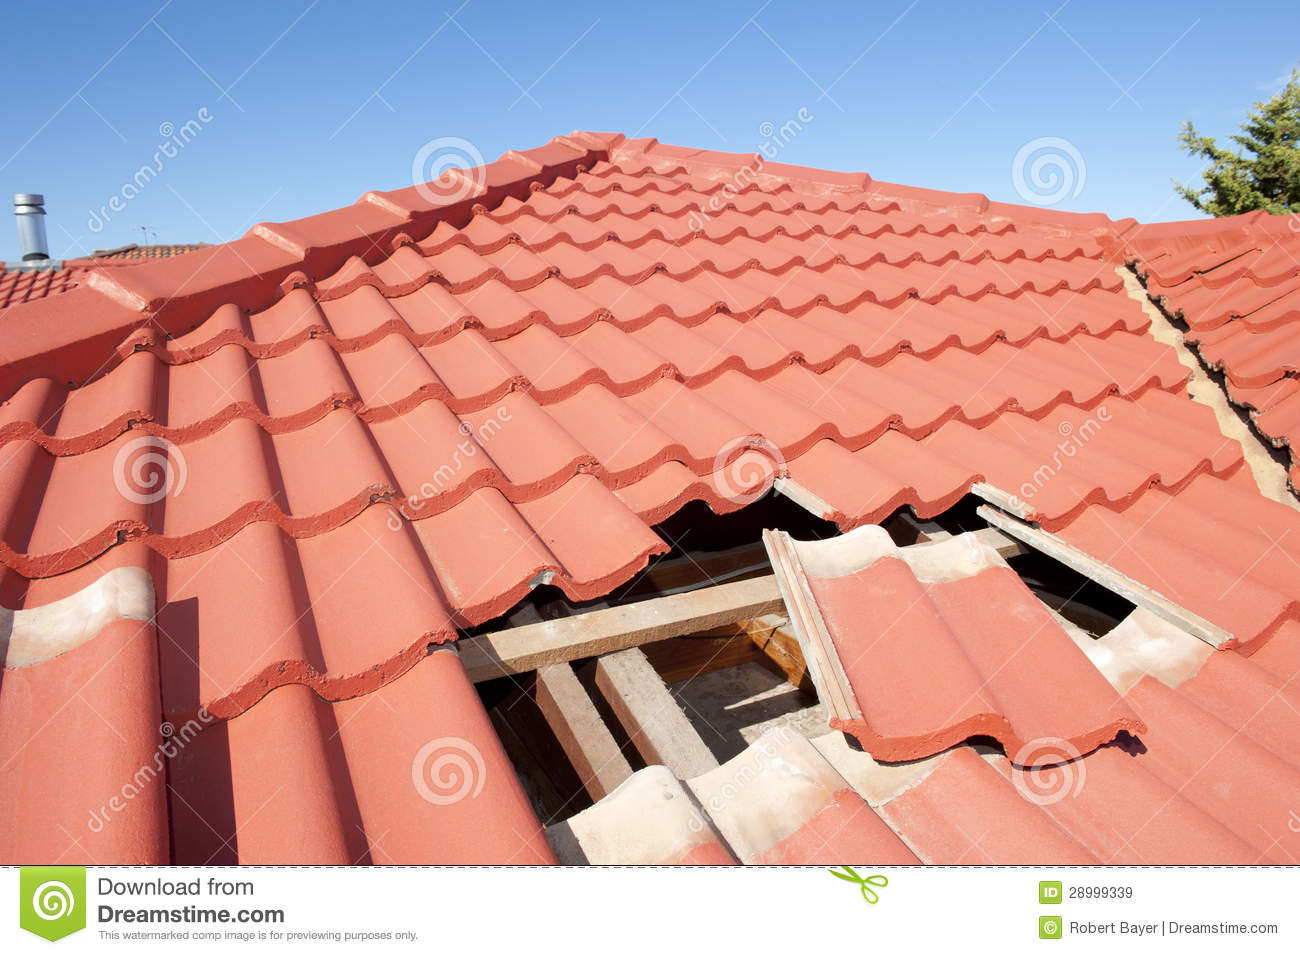 Damaged Red Tile Roof Construction House Royalty Free